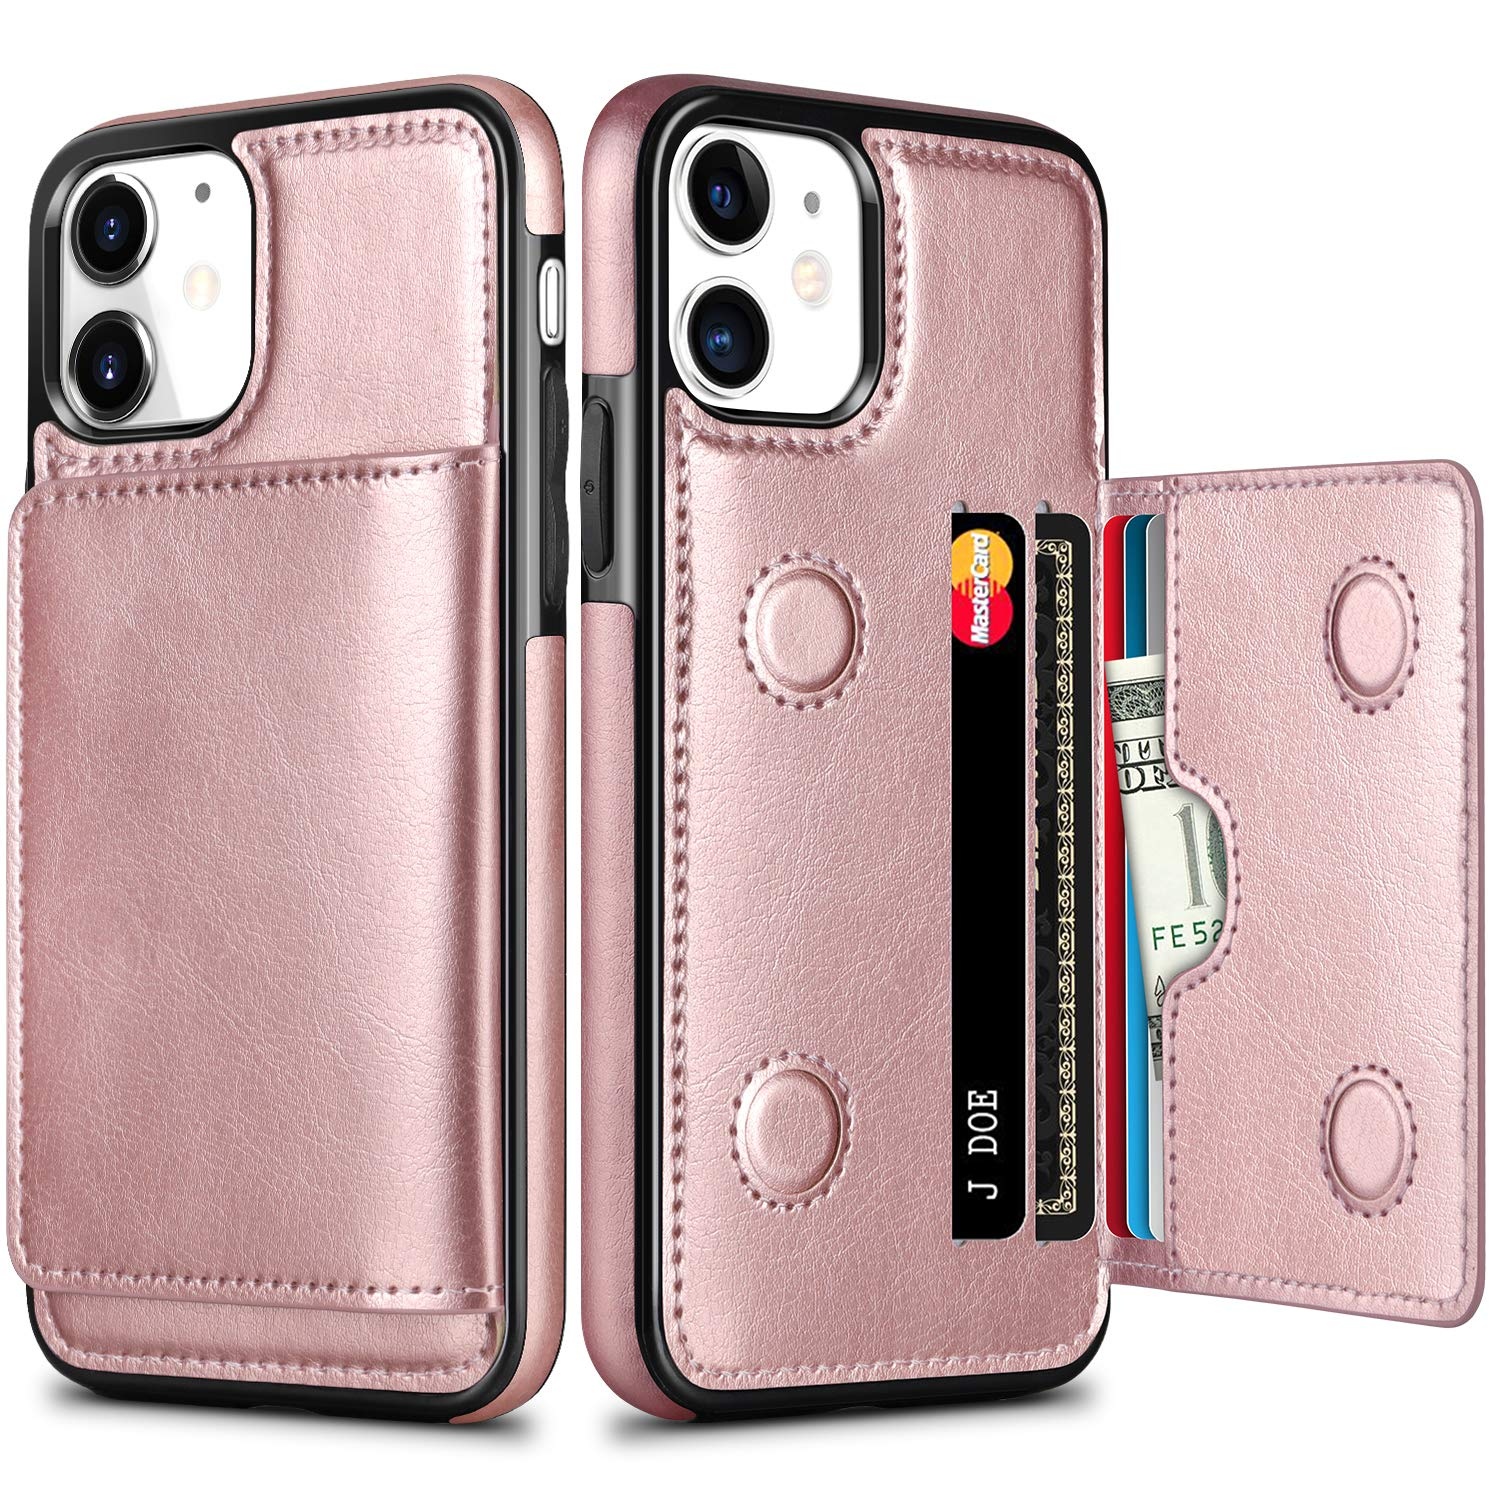 HianDier Wallet Case for iPhone 11 Case with Card Holder PU Leather Kickstand Card Slots Cover Protective Magnetic Closure Shockproof Flip Back Case for iPhone 11 6.1-inch, Rose Gold